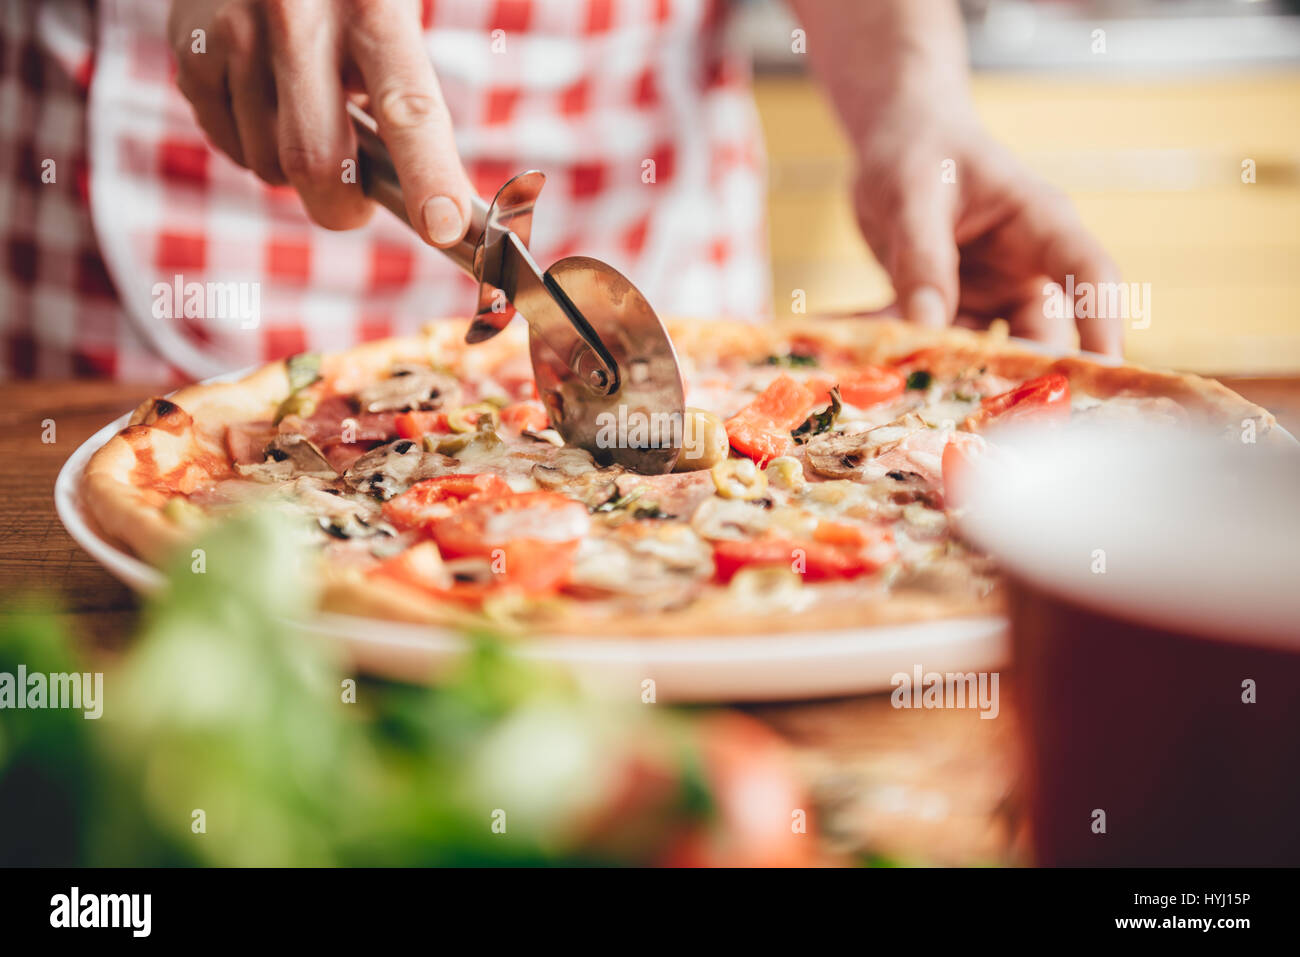 Woman cutting fresh baked pizza - Stock Image